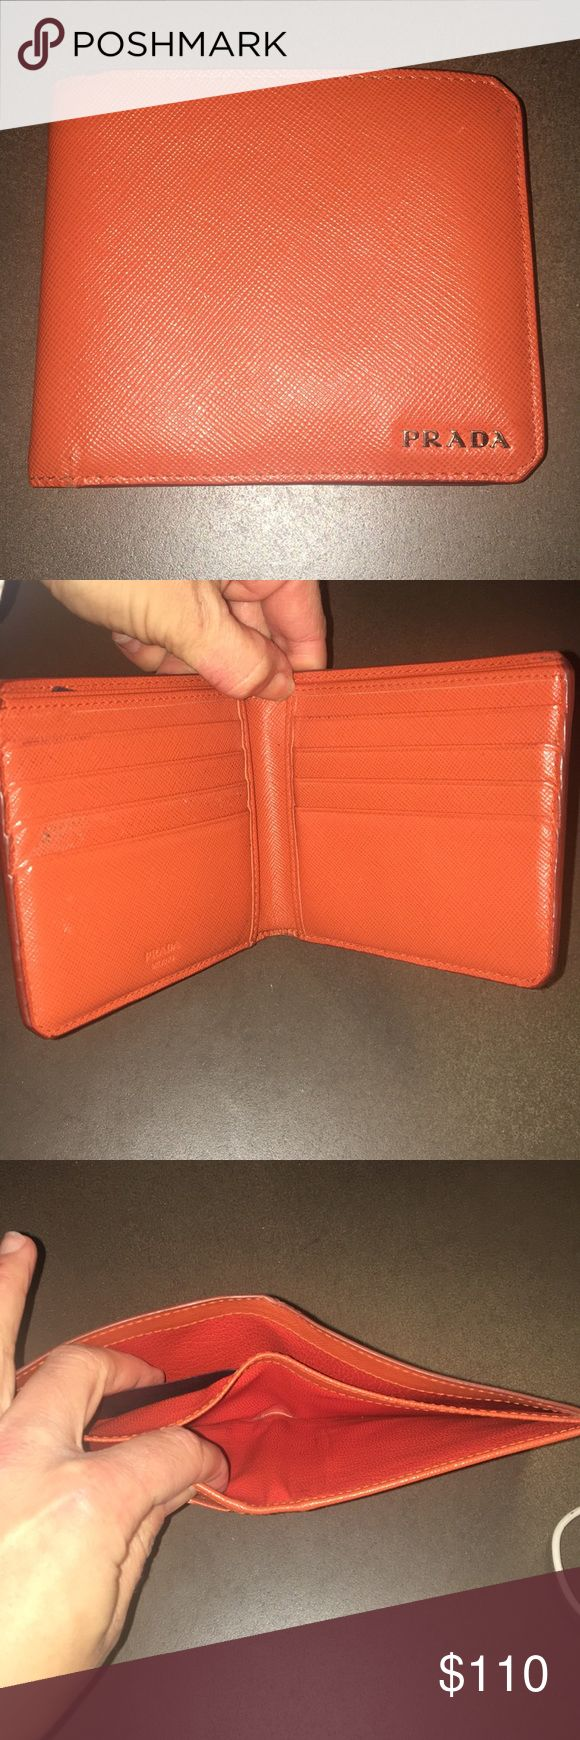 "Men's orange leather Prada wallet Fair used condition. Orange leather. Prada name in silver. Because it's used, box & papers were thrown out. Priced according to condition, usage, & lack of papers, box.  *there is a slight smoke odor Approx 4.25"" x 3.75"" x 1"" Prada Accessories Money Clips"